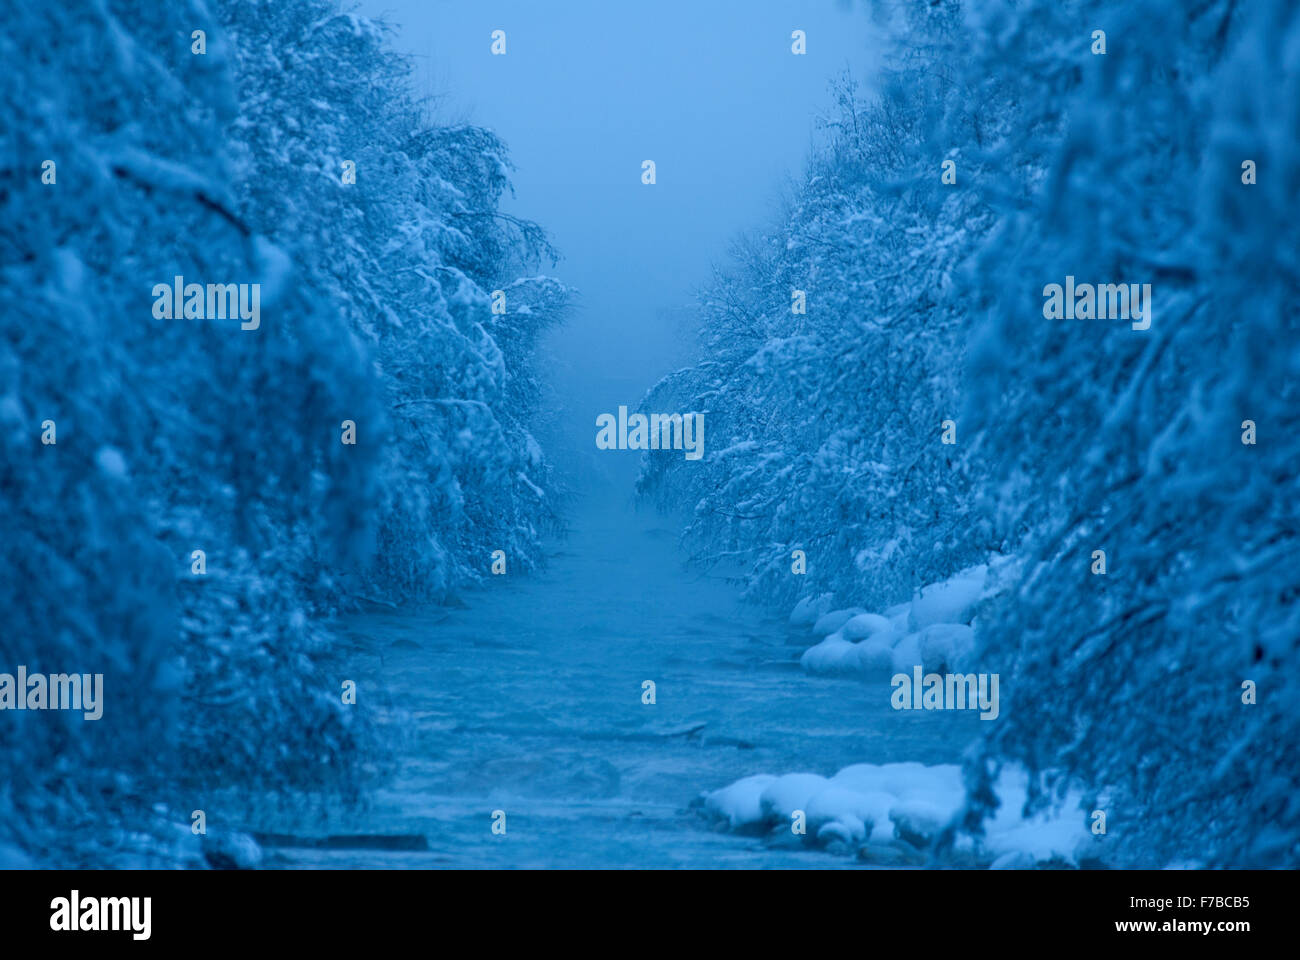 Misty early morning scene from bridge crossing the L'arve river with trees and river bank covered in fresh snowfall. - Stock Image